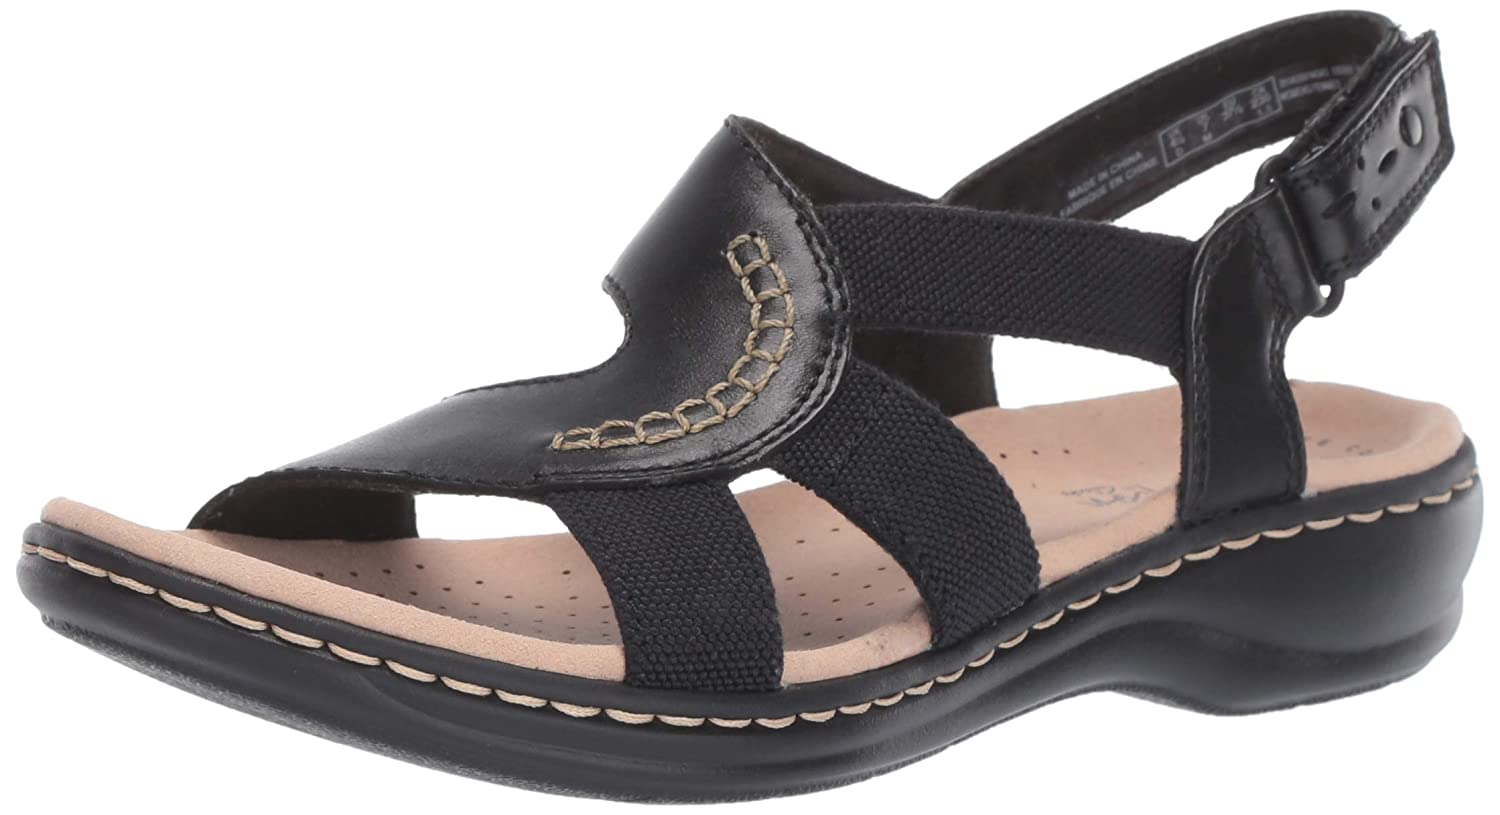 85bfbab7bd0 Amazon.com  CLARKS Women s Leisa Joy Sandal  Shoes